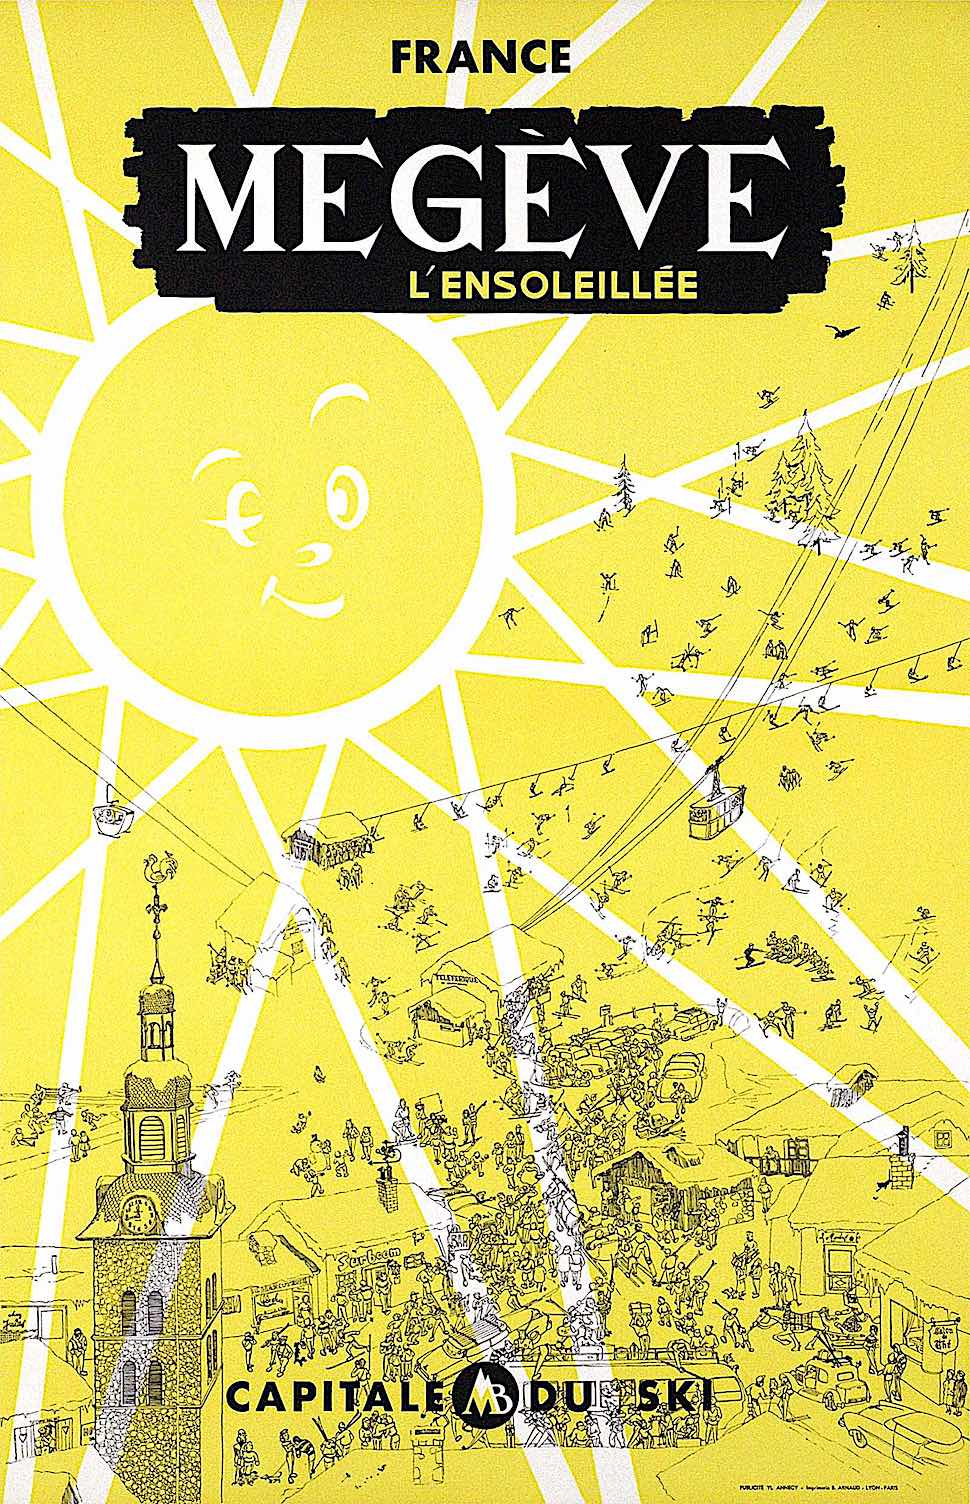 a Y. Laty 1955 illustration for France Megeve L'ensoleillee, with a giant smiling winking sun